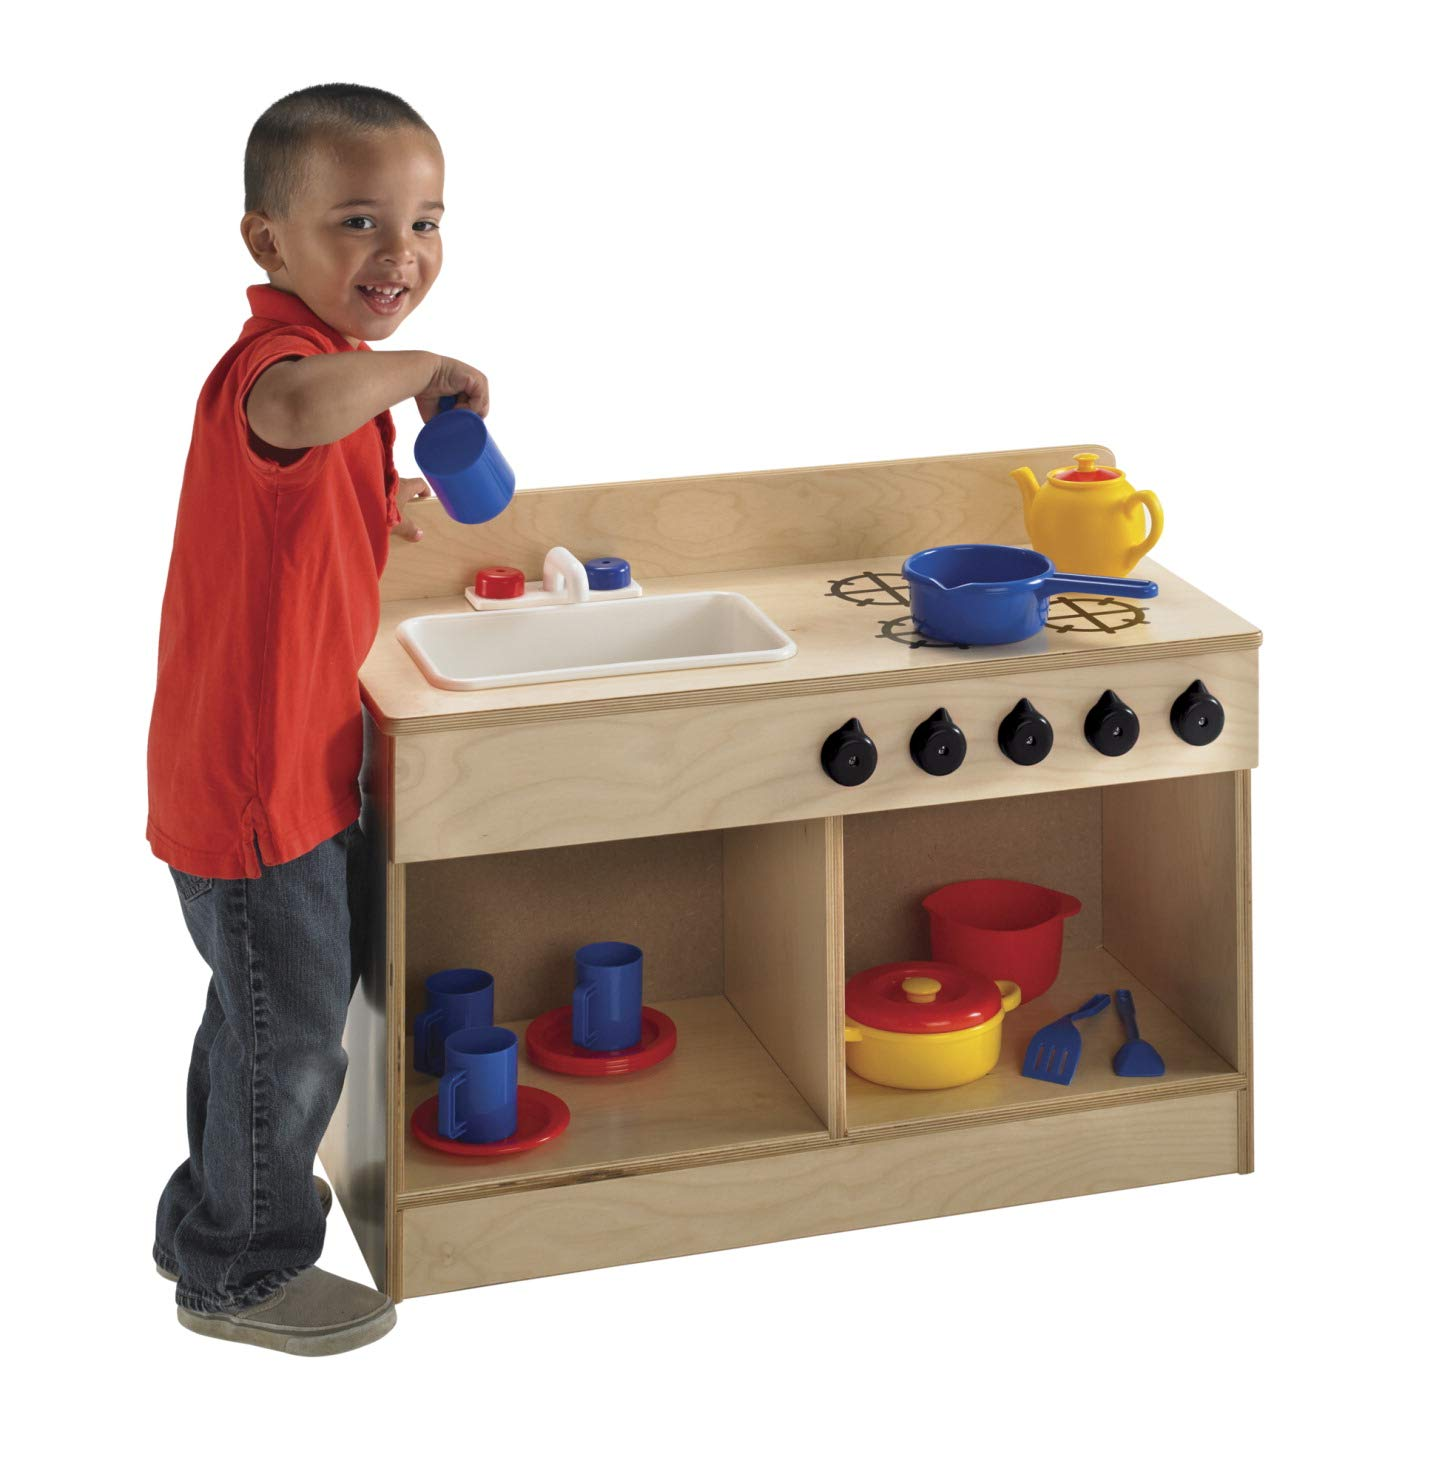 Childcraft 1491196 Toddler Sink and Stove Combo, 21.5'' Height, 13.38'' Width, 29.5'' Length, Natural Wood by Childcraft (Image #2)